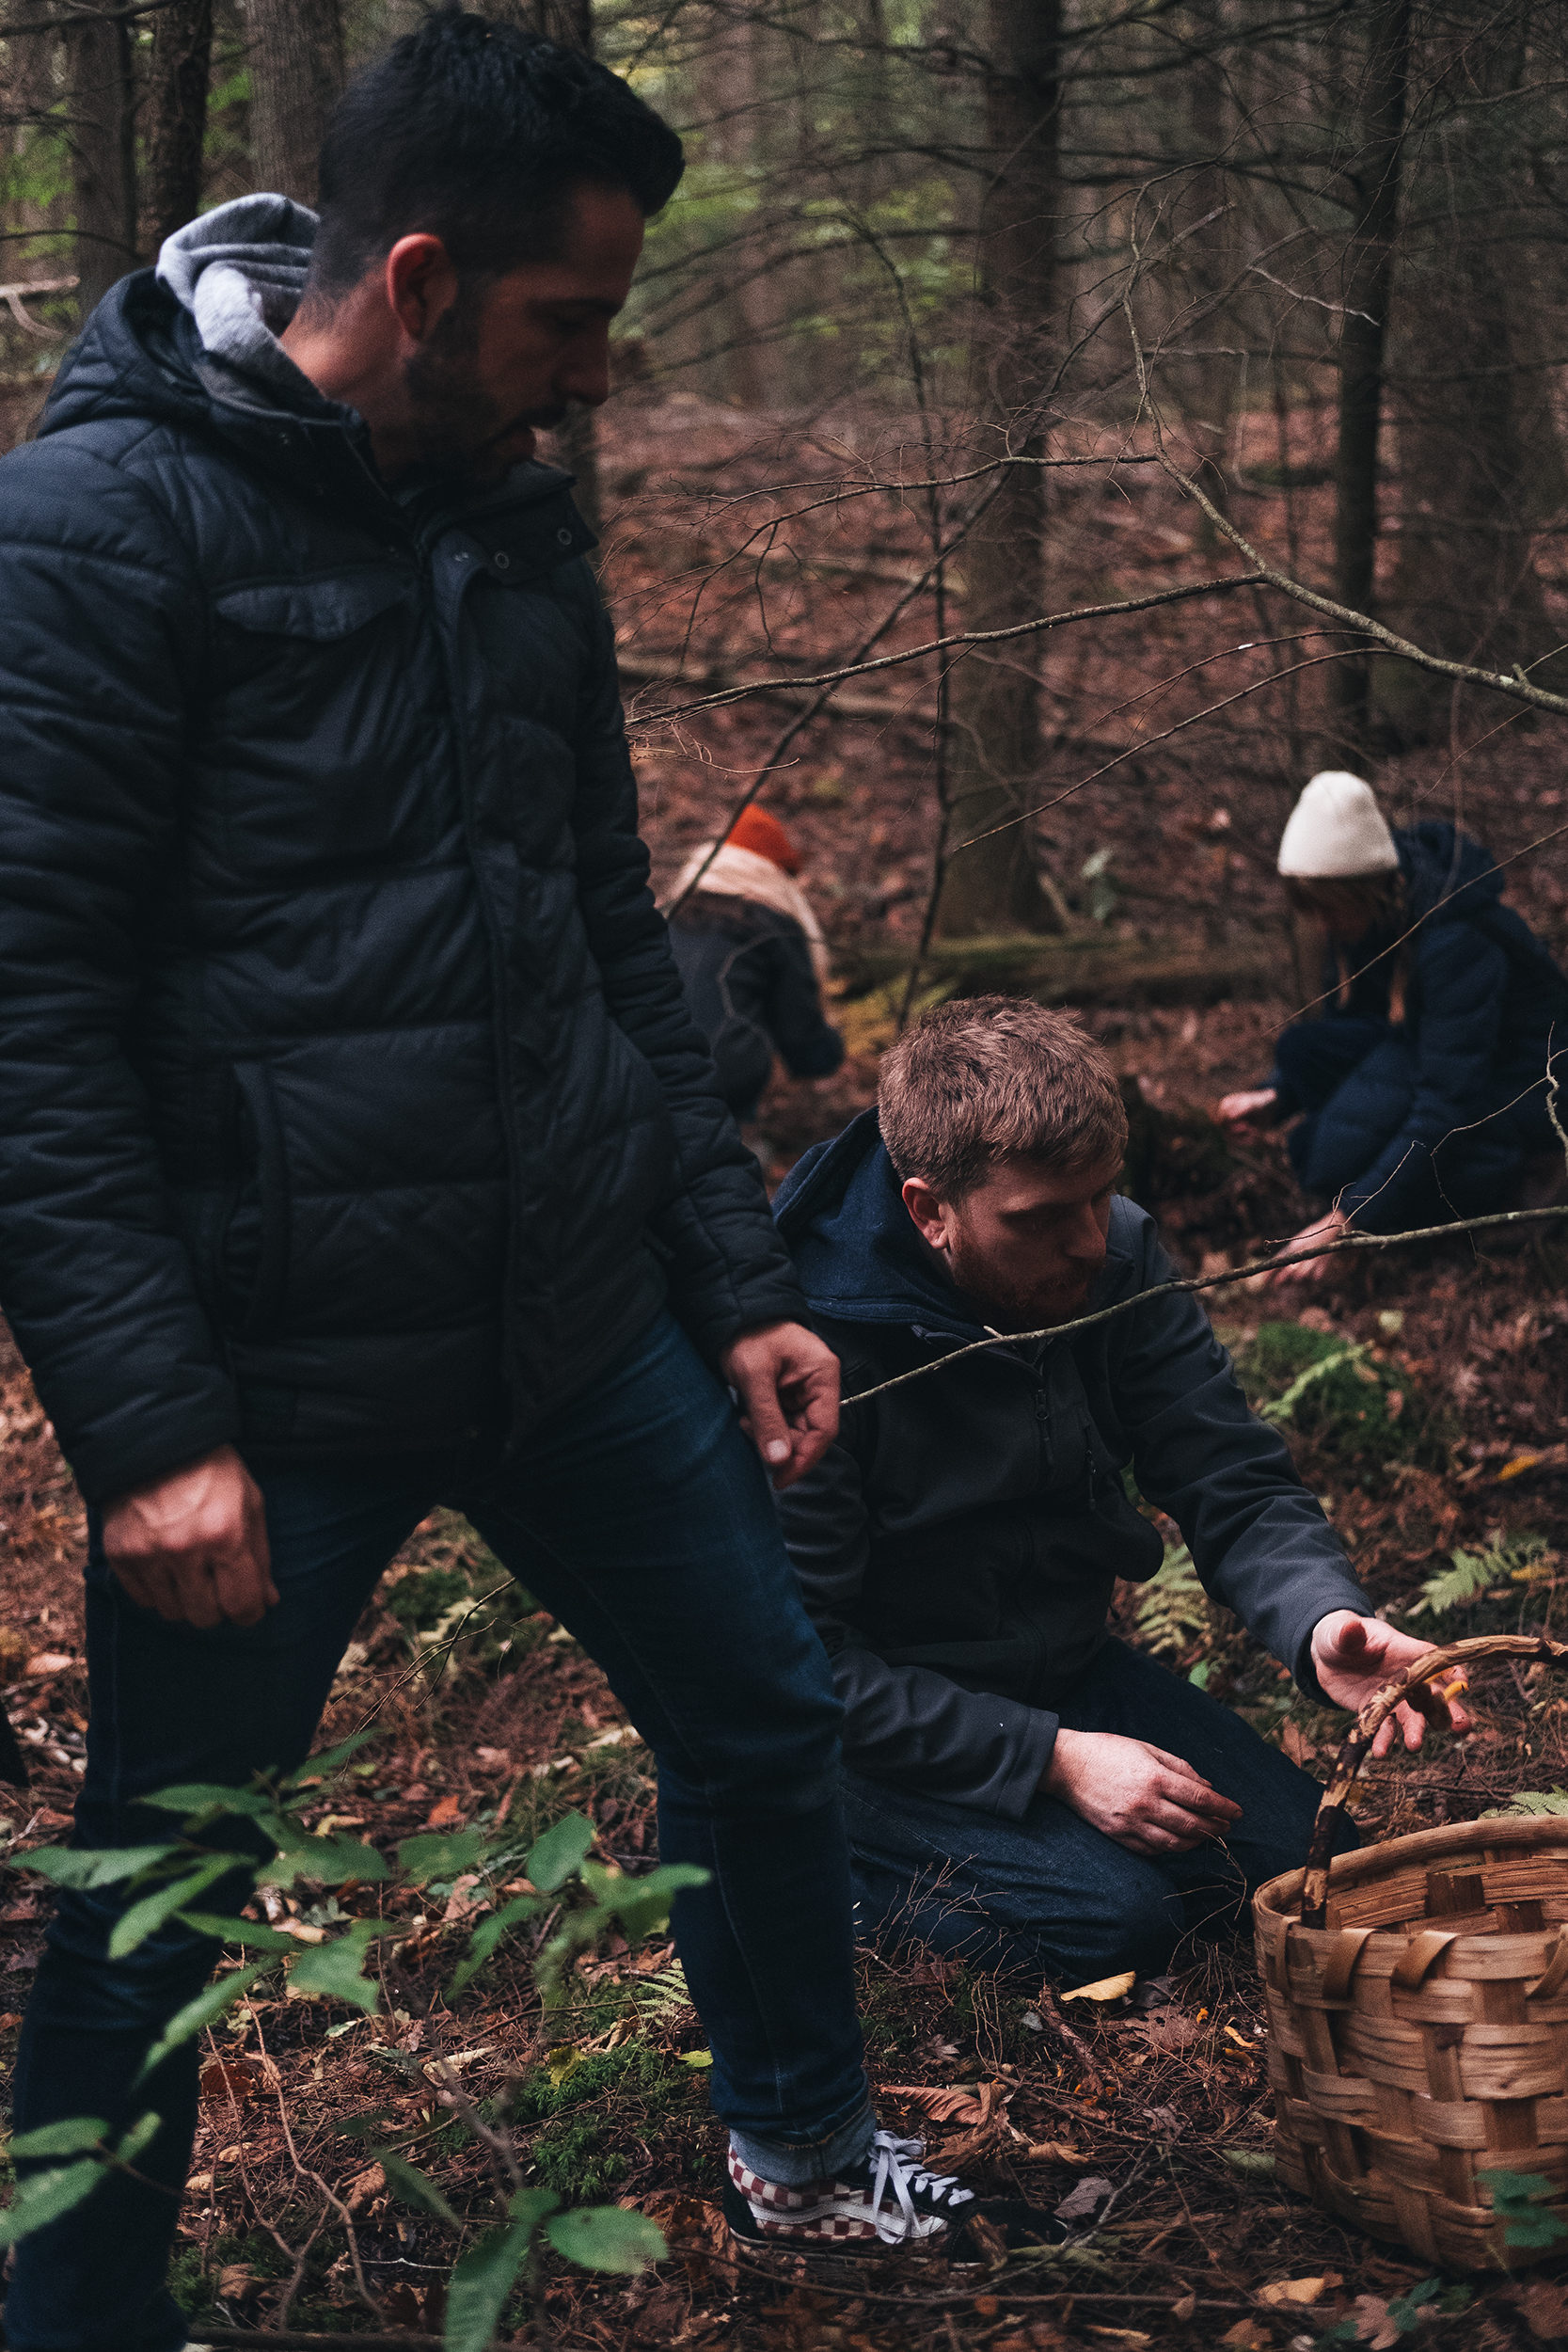 Understanding process together while foraging for mushrooms.